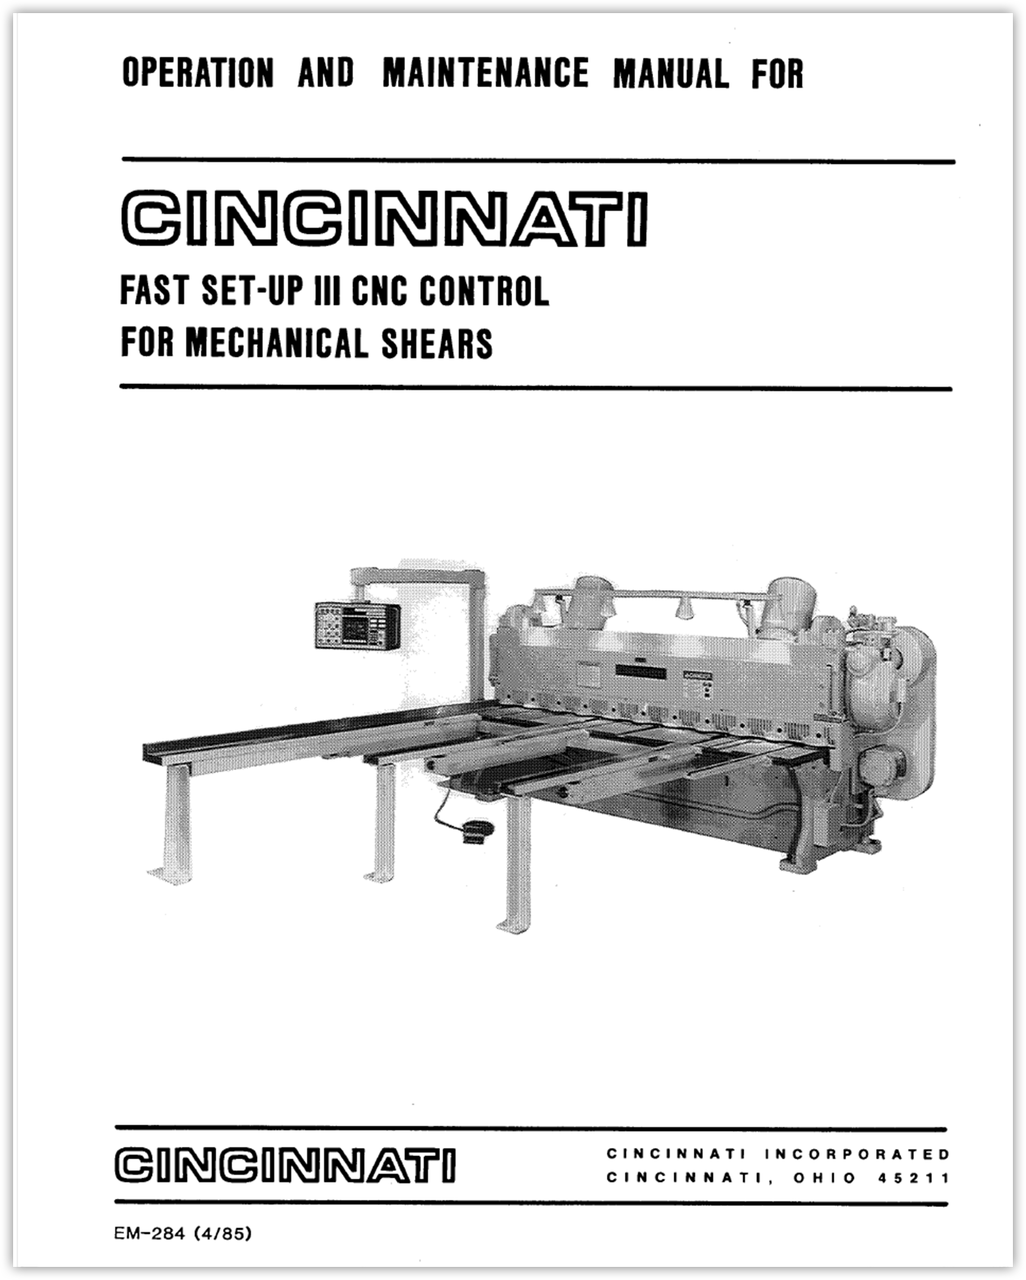 EM-284 (4-85) Fast Set Up III CNC Control for Mechanical Shears - Operation and Maintenance Manual